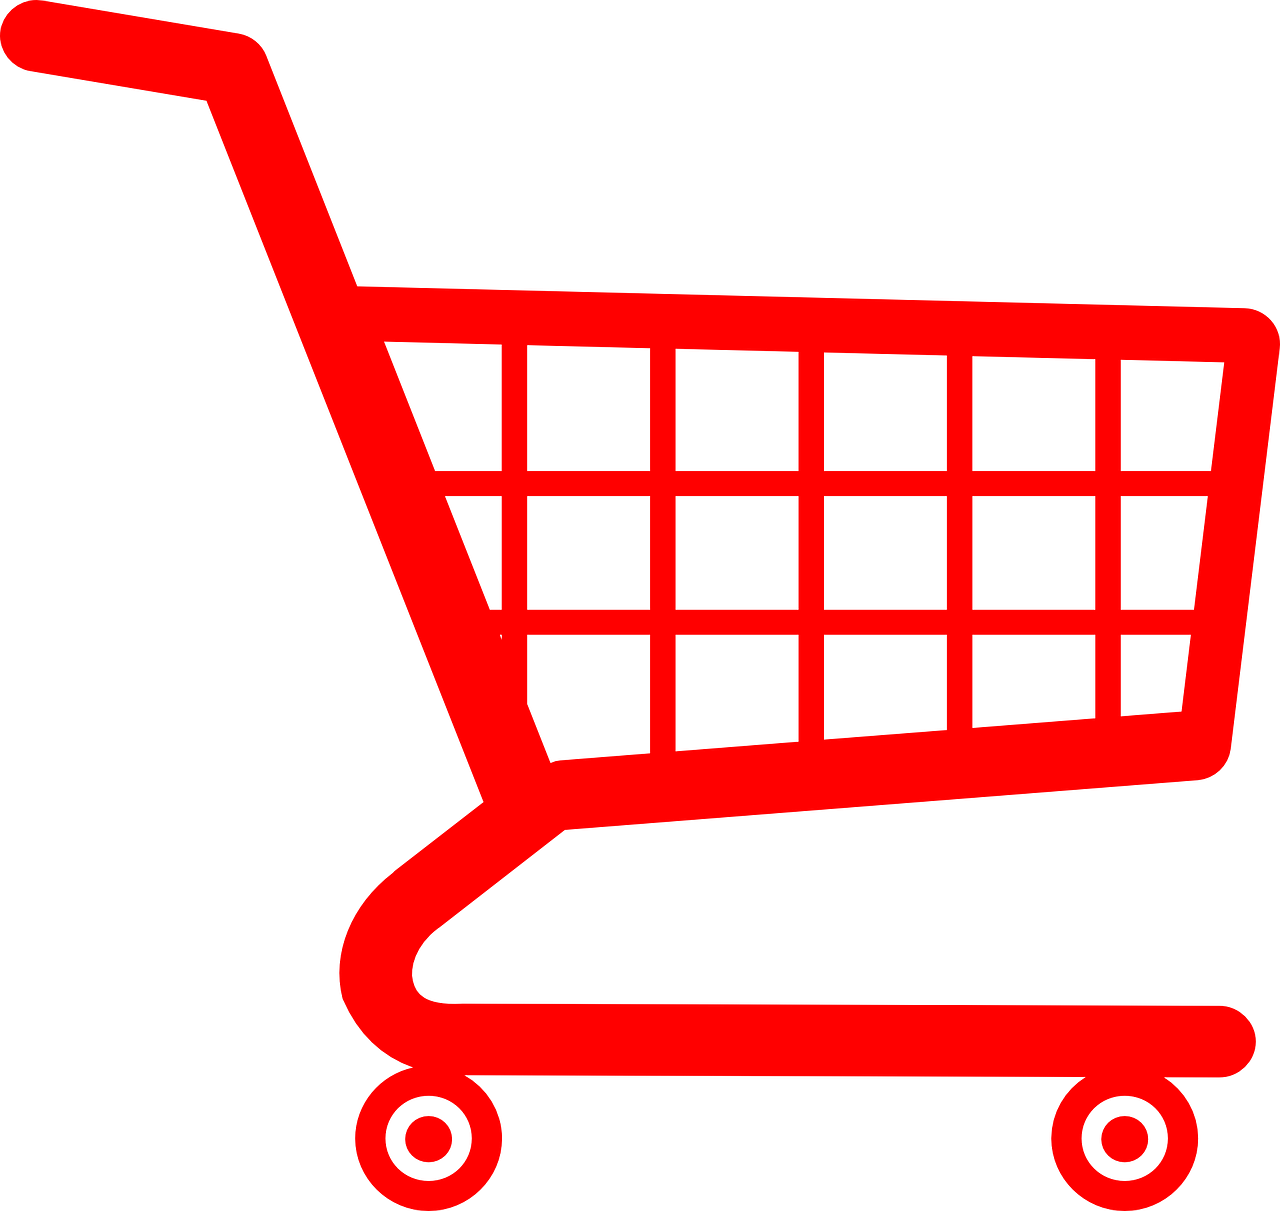 png royalty free Supermarket clipart shopping trolly. Cart png image purepng